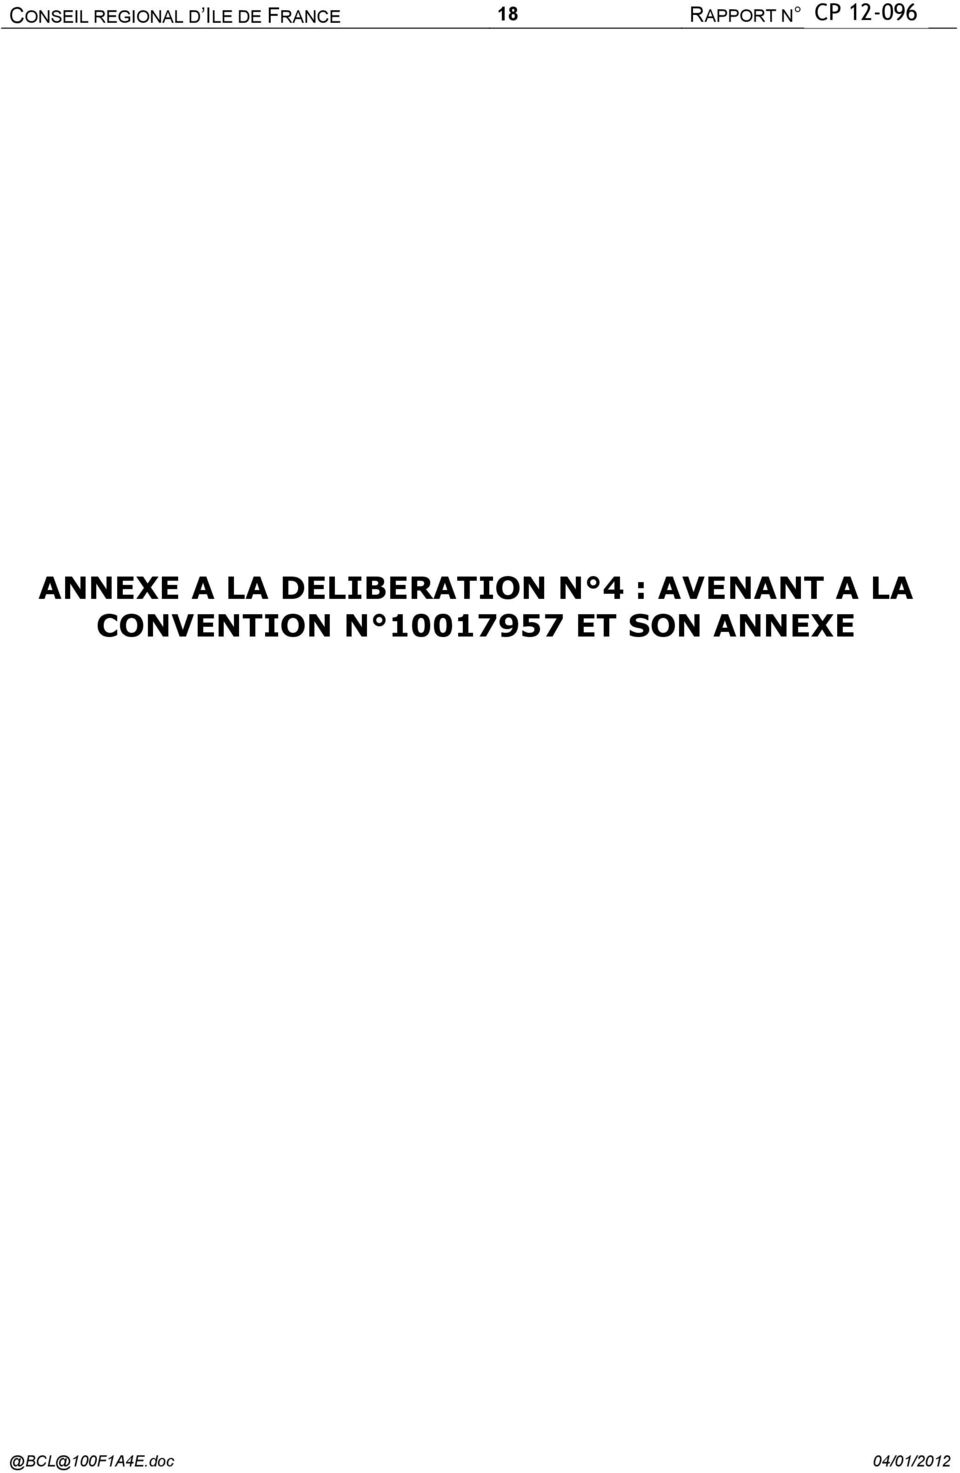 DELIBERATION N 4 : AVENANT A LA CONVENTION